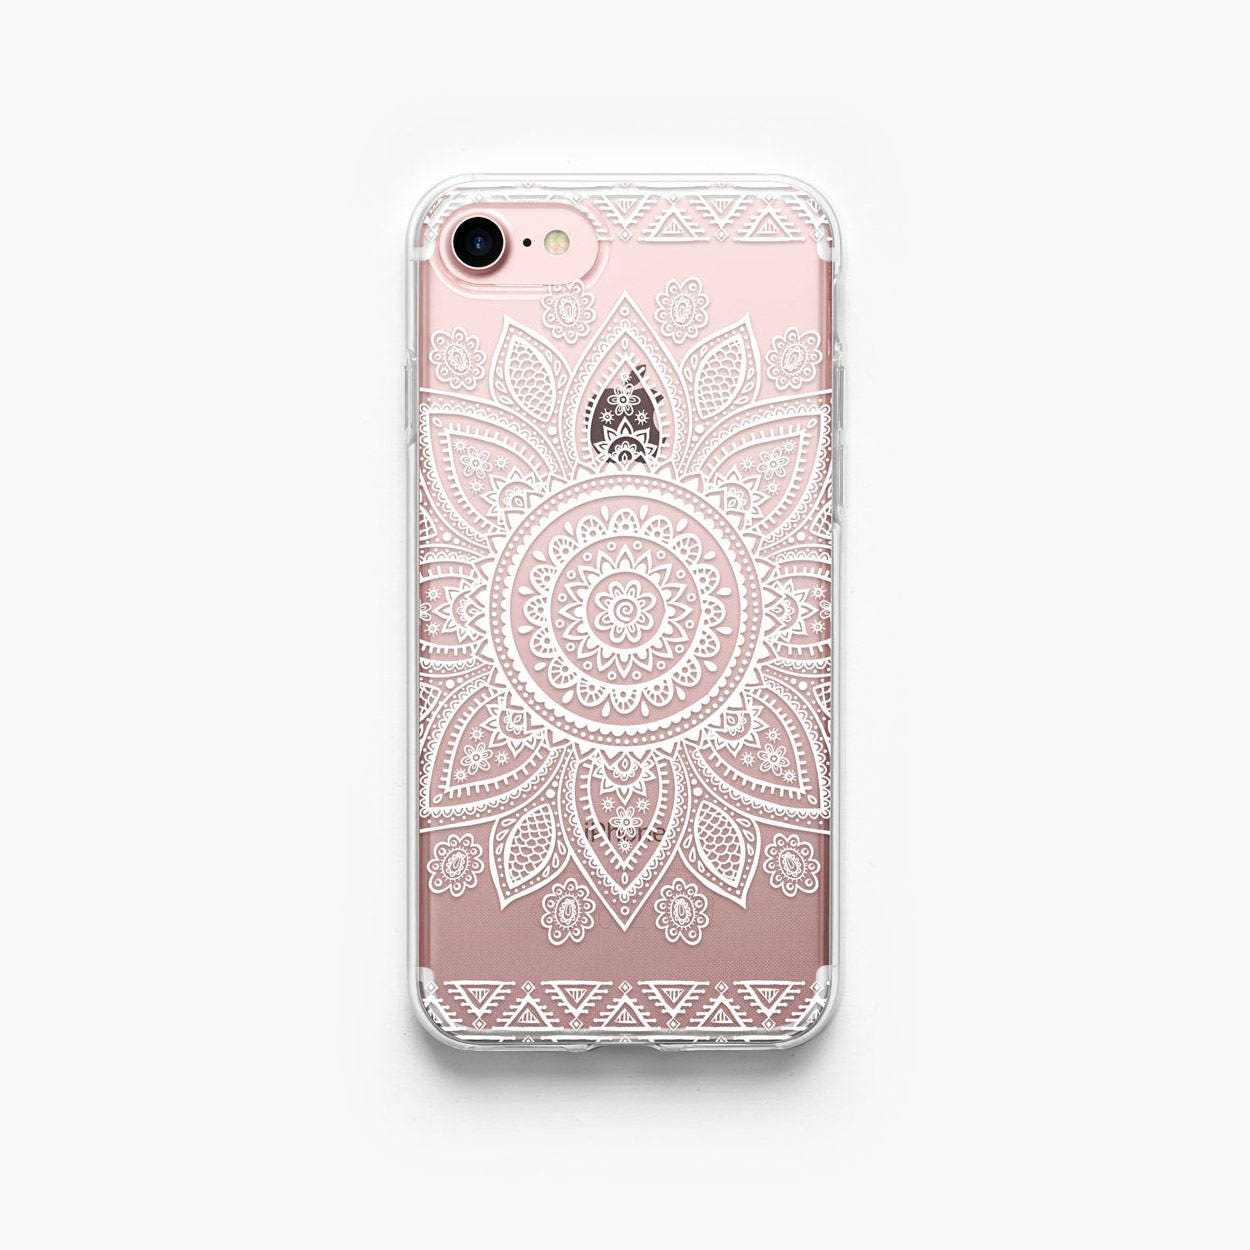 iphone 6s case etsy